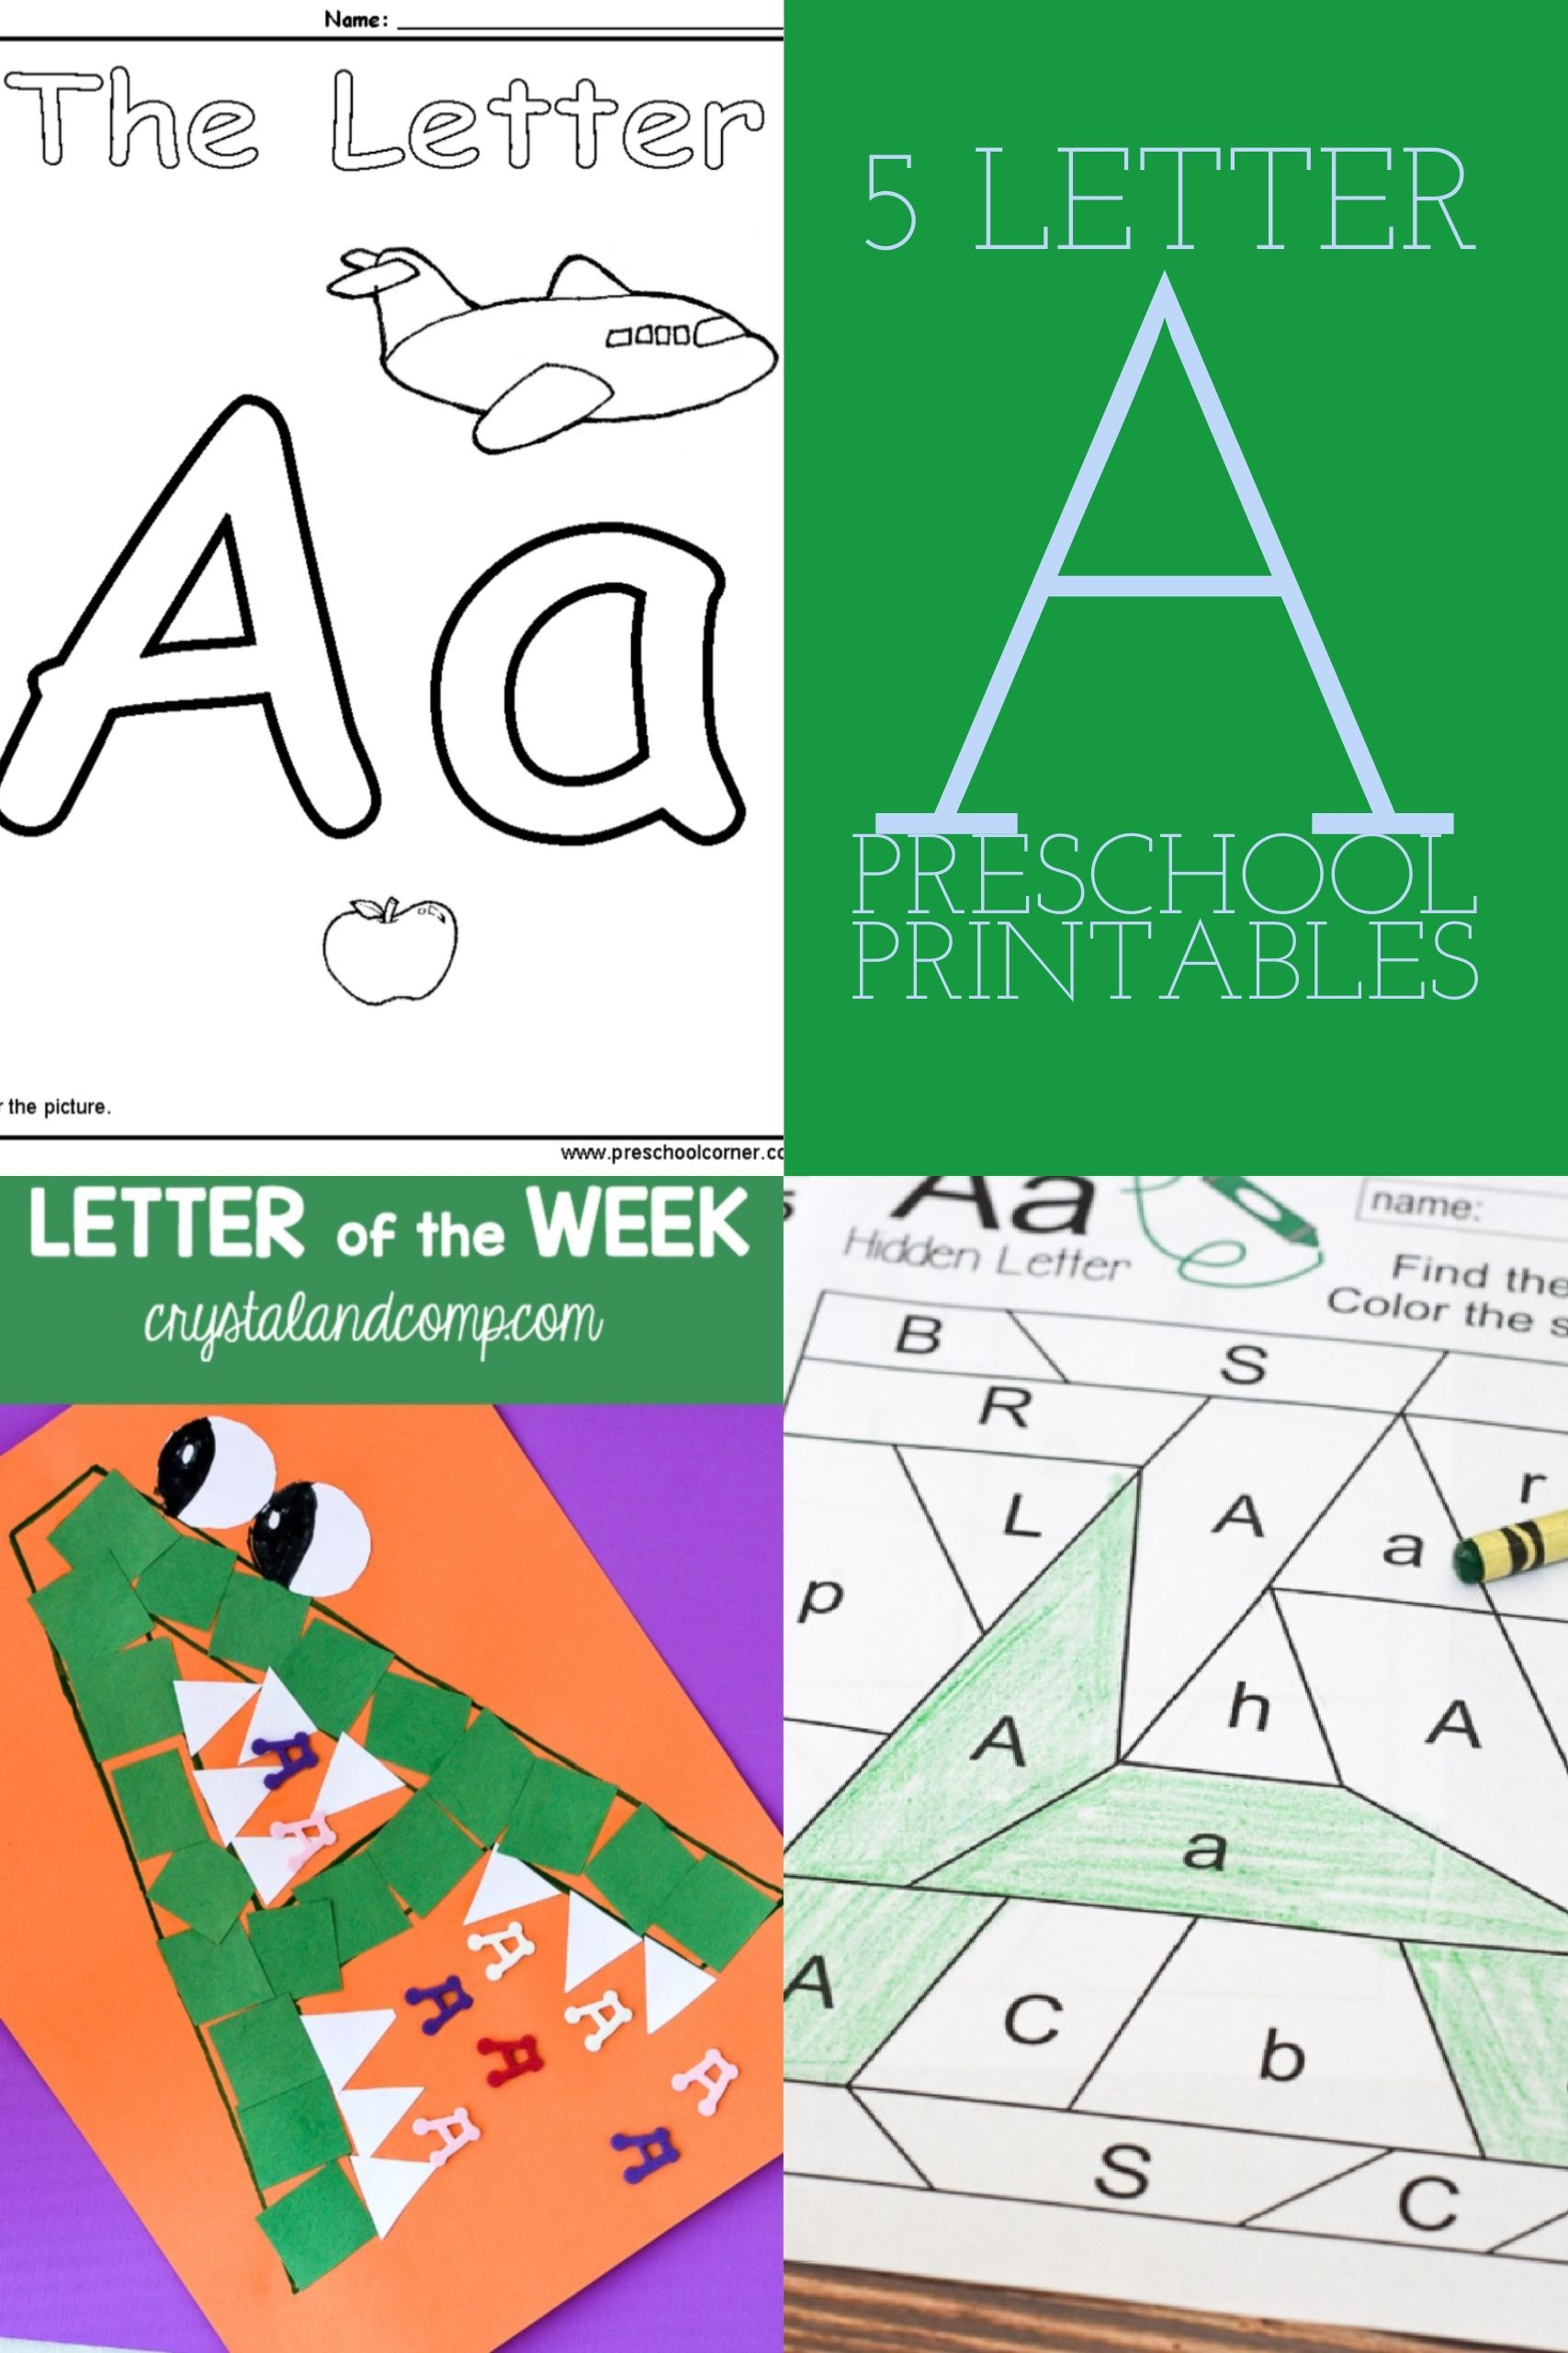 5 Letter A Preschool Printables | Preschool printables and Parents